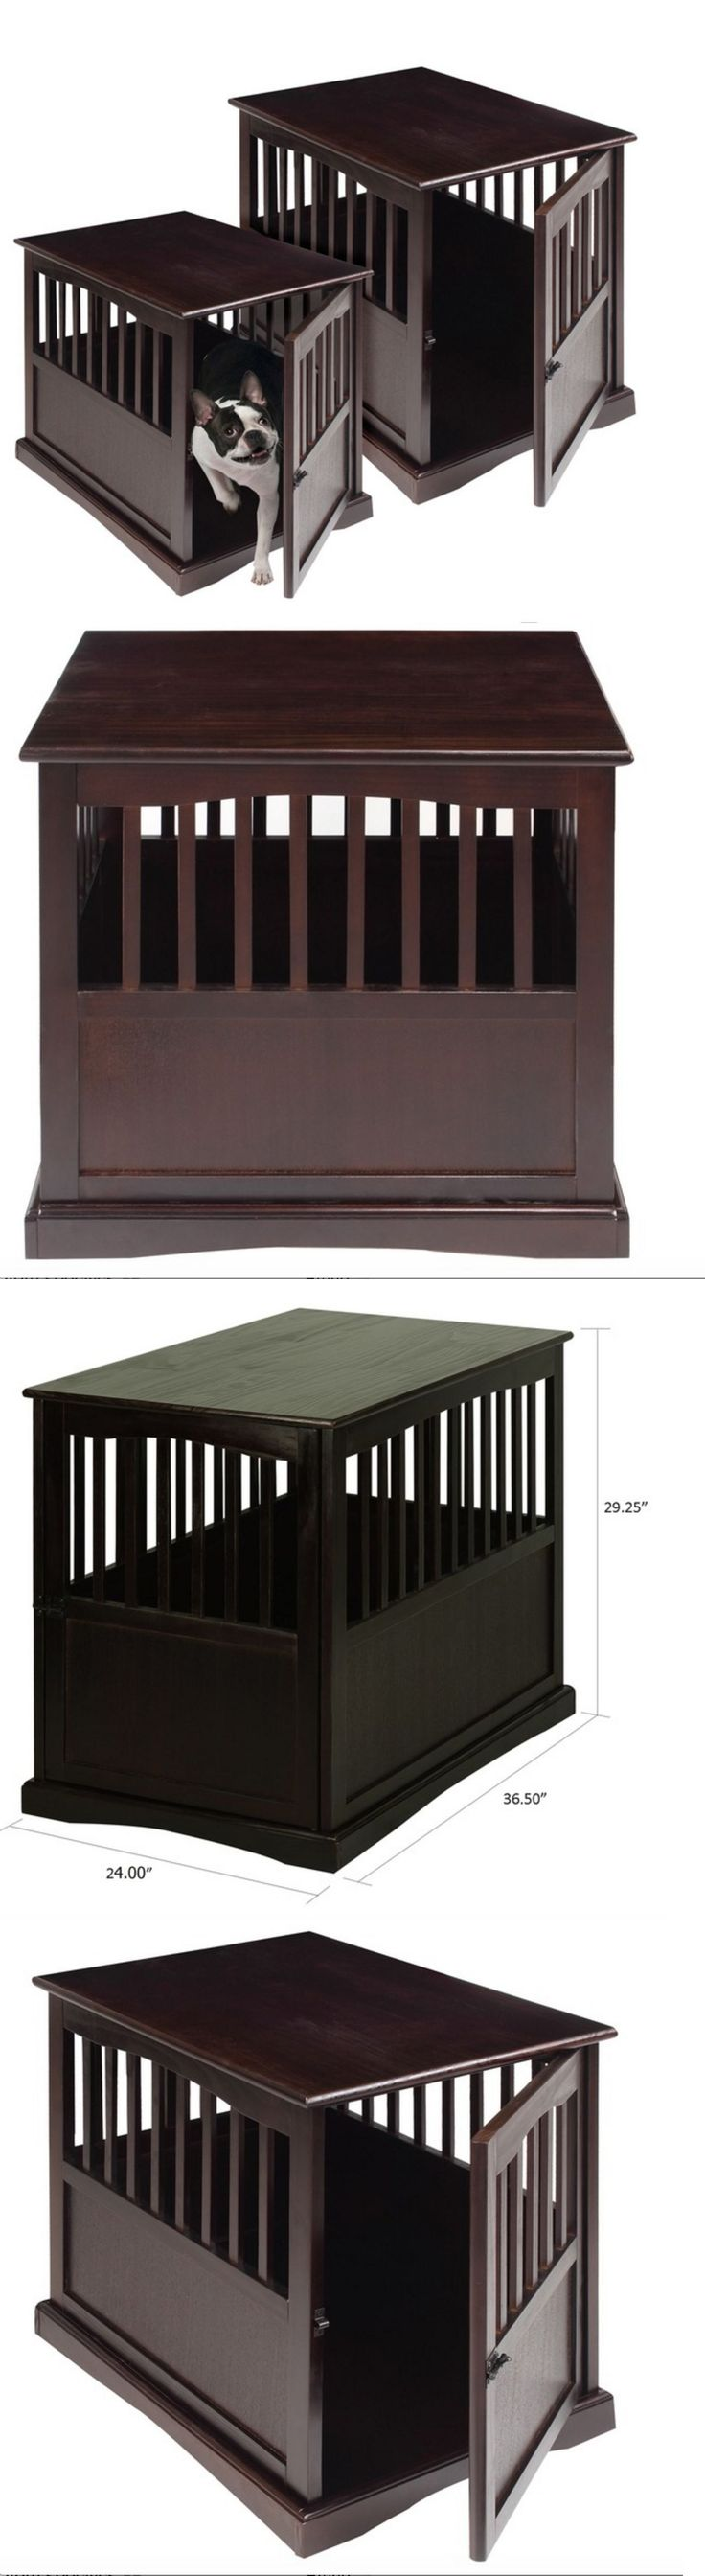 Dog Houses 108884: Dog Crate End Table Furniture Pet House Indoor Kennels Large Wooden Side Table -> BUY IT NOW ONLY: $150.77 on eBay!